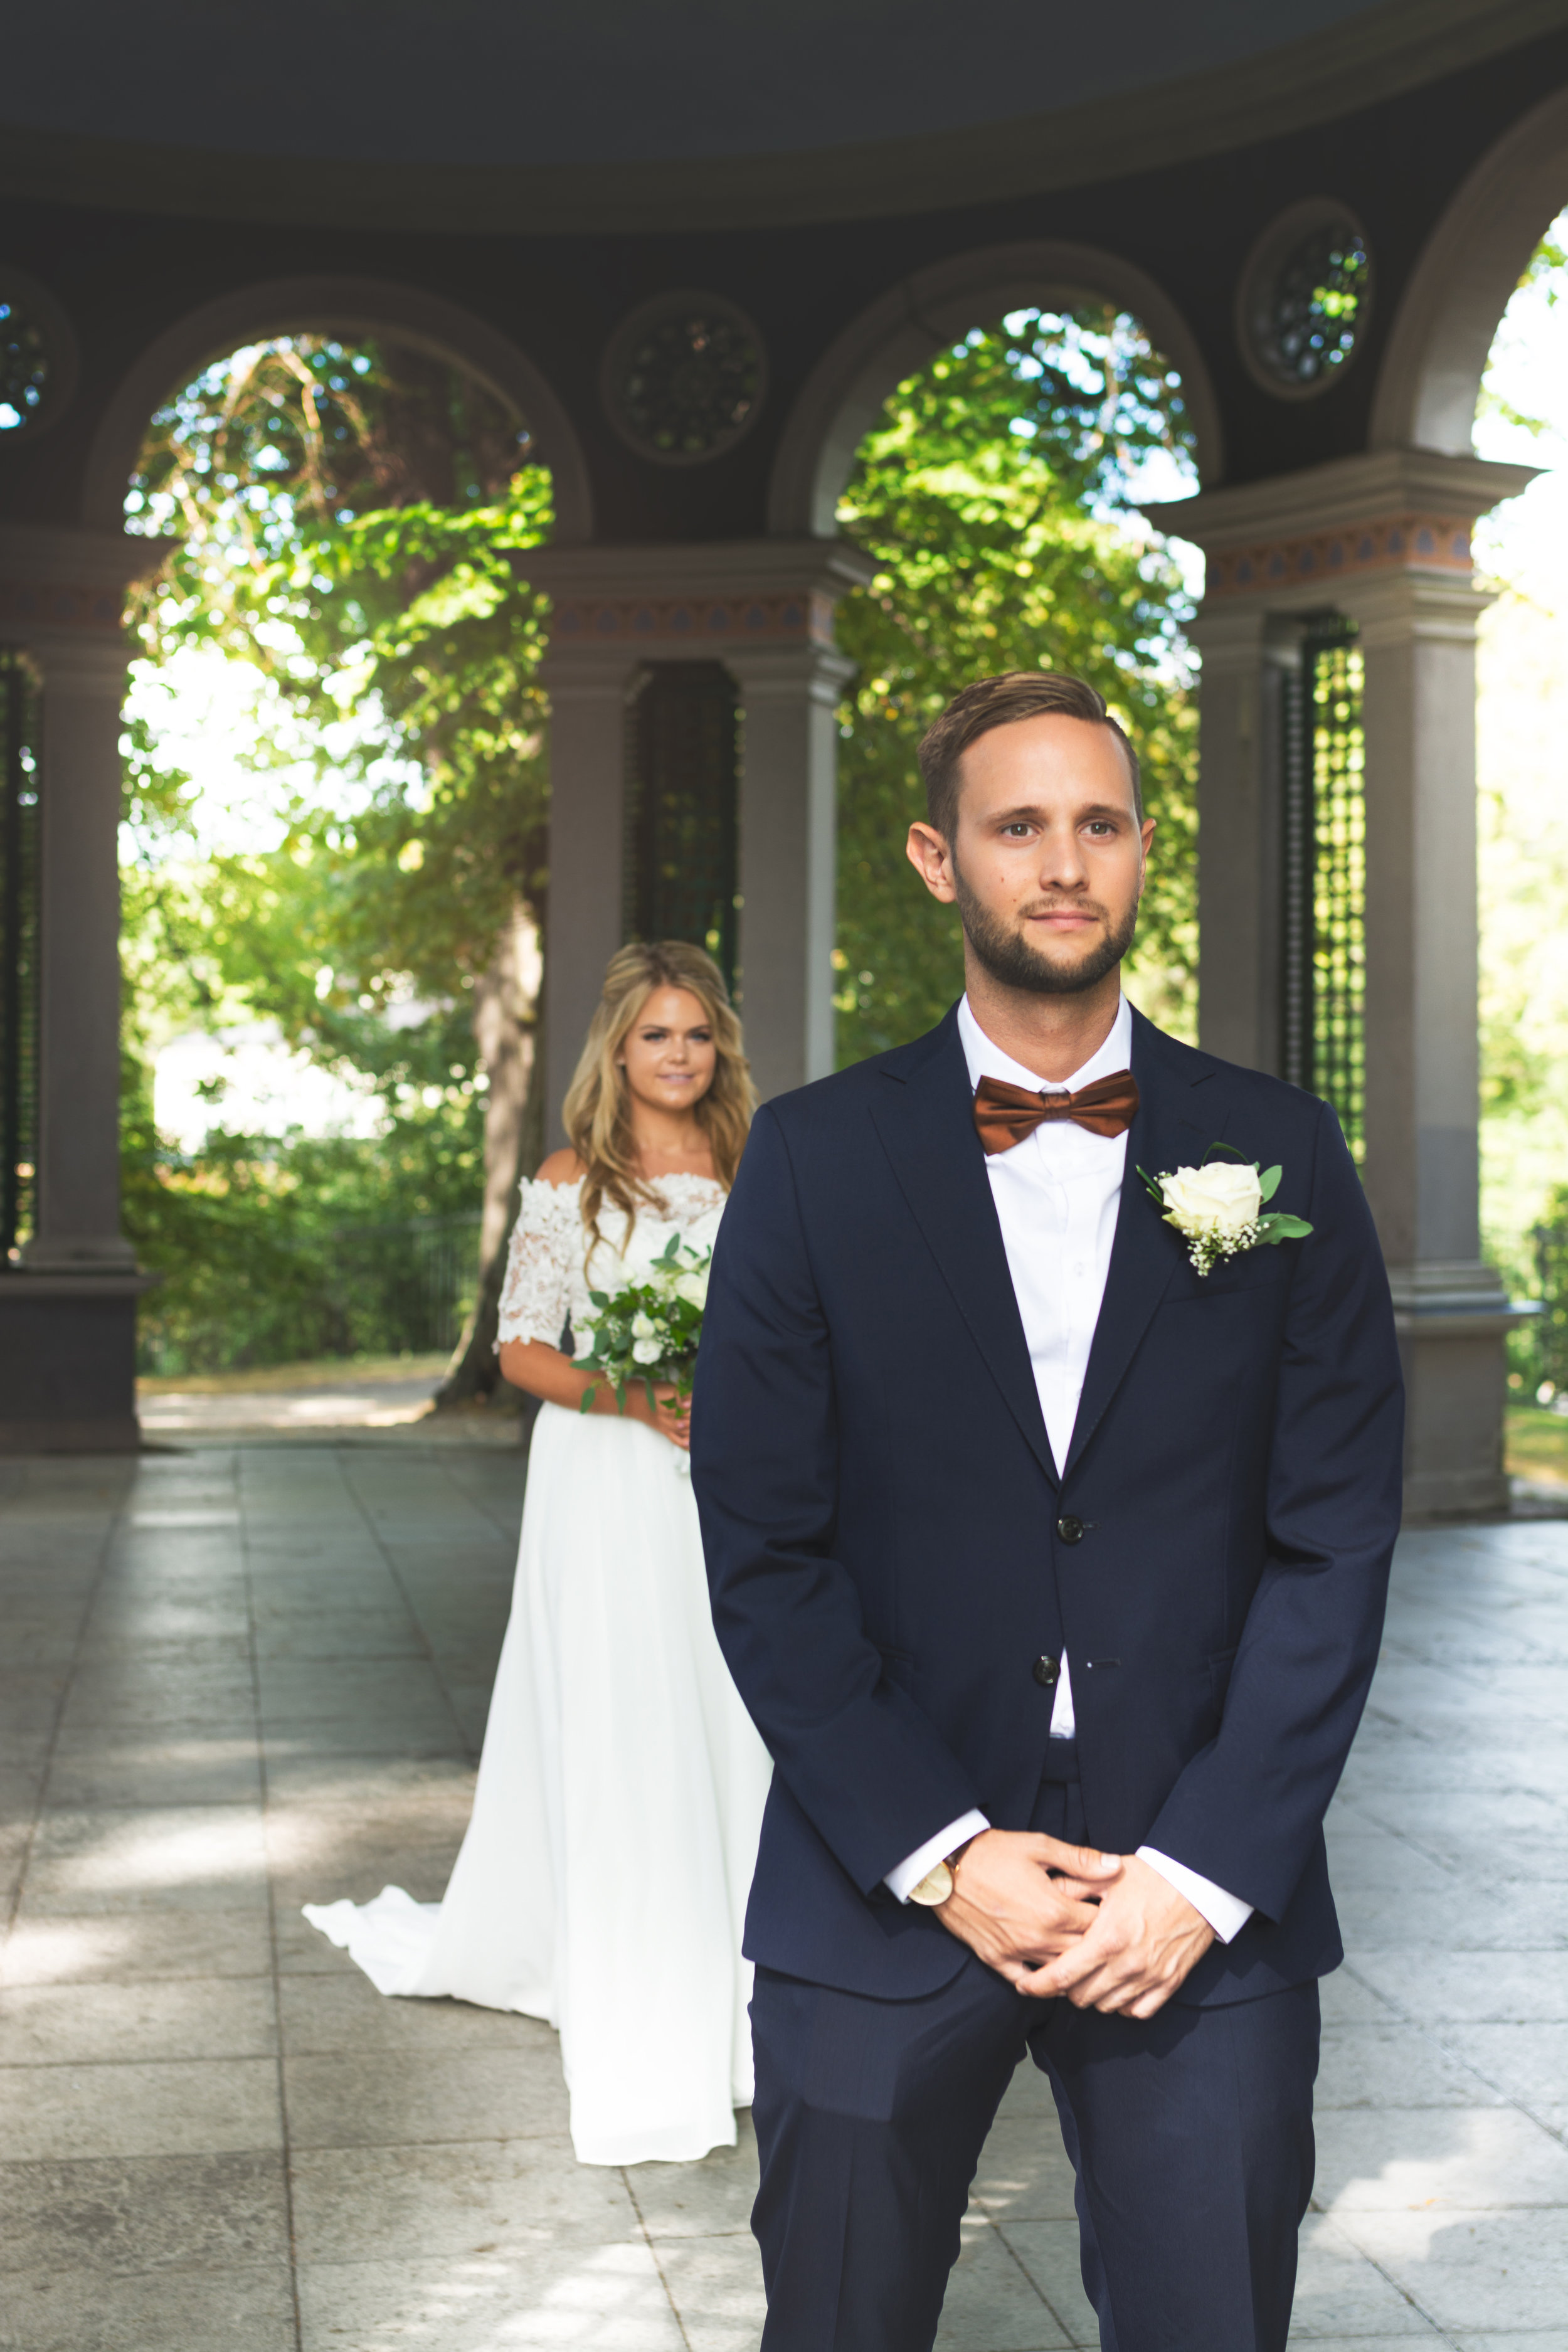 Nicklas_johanna_wedding_1